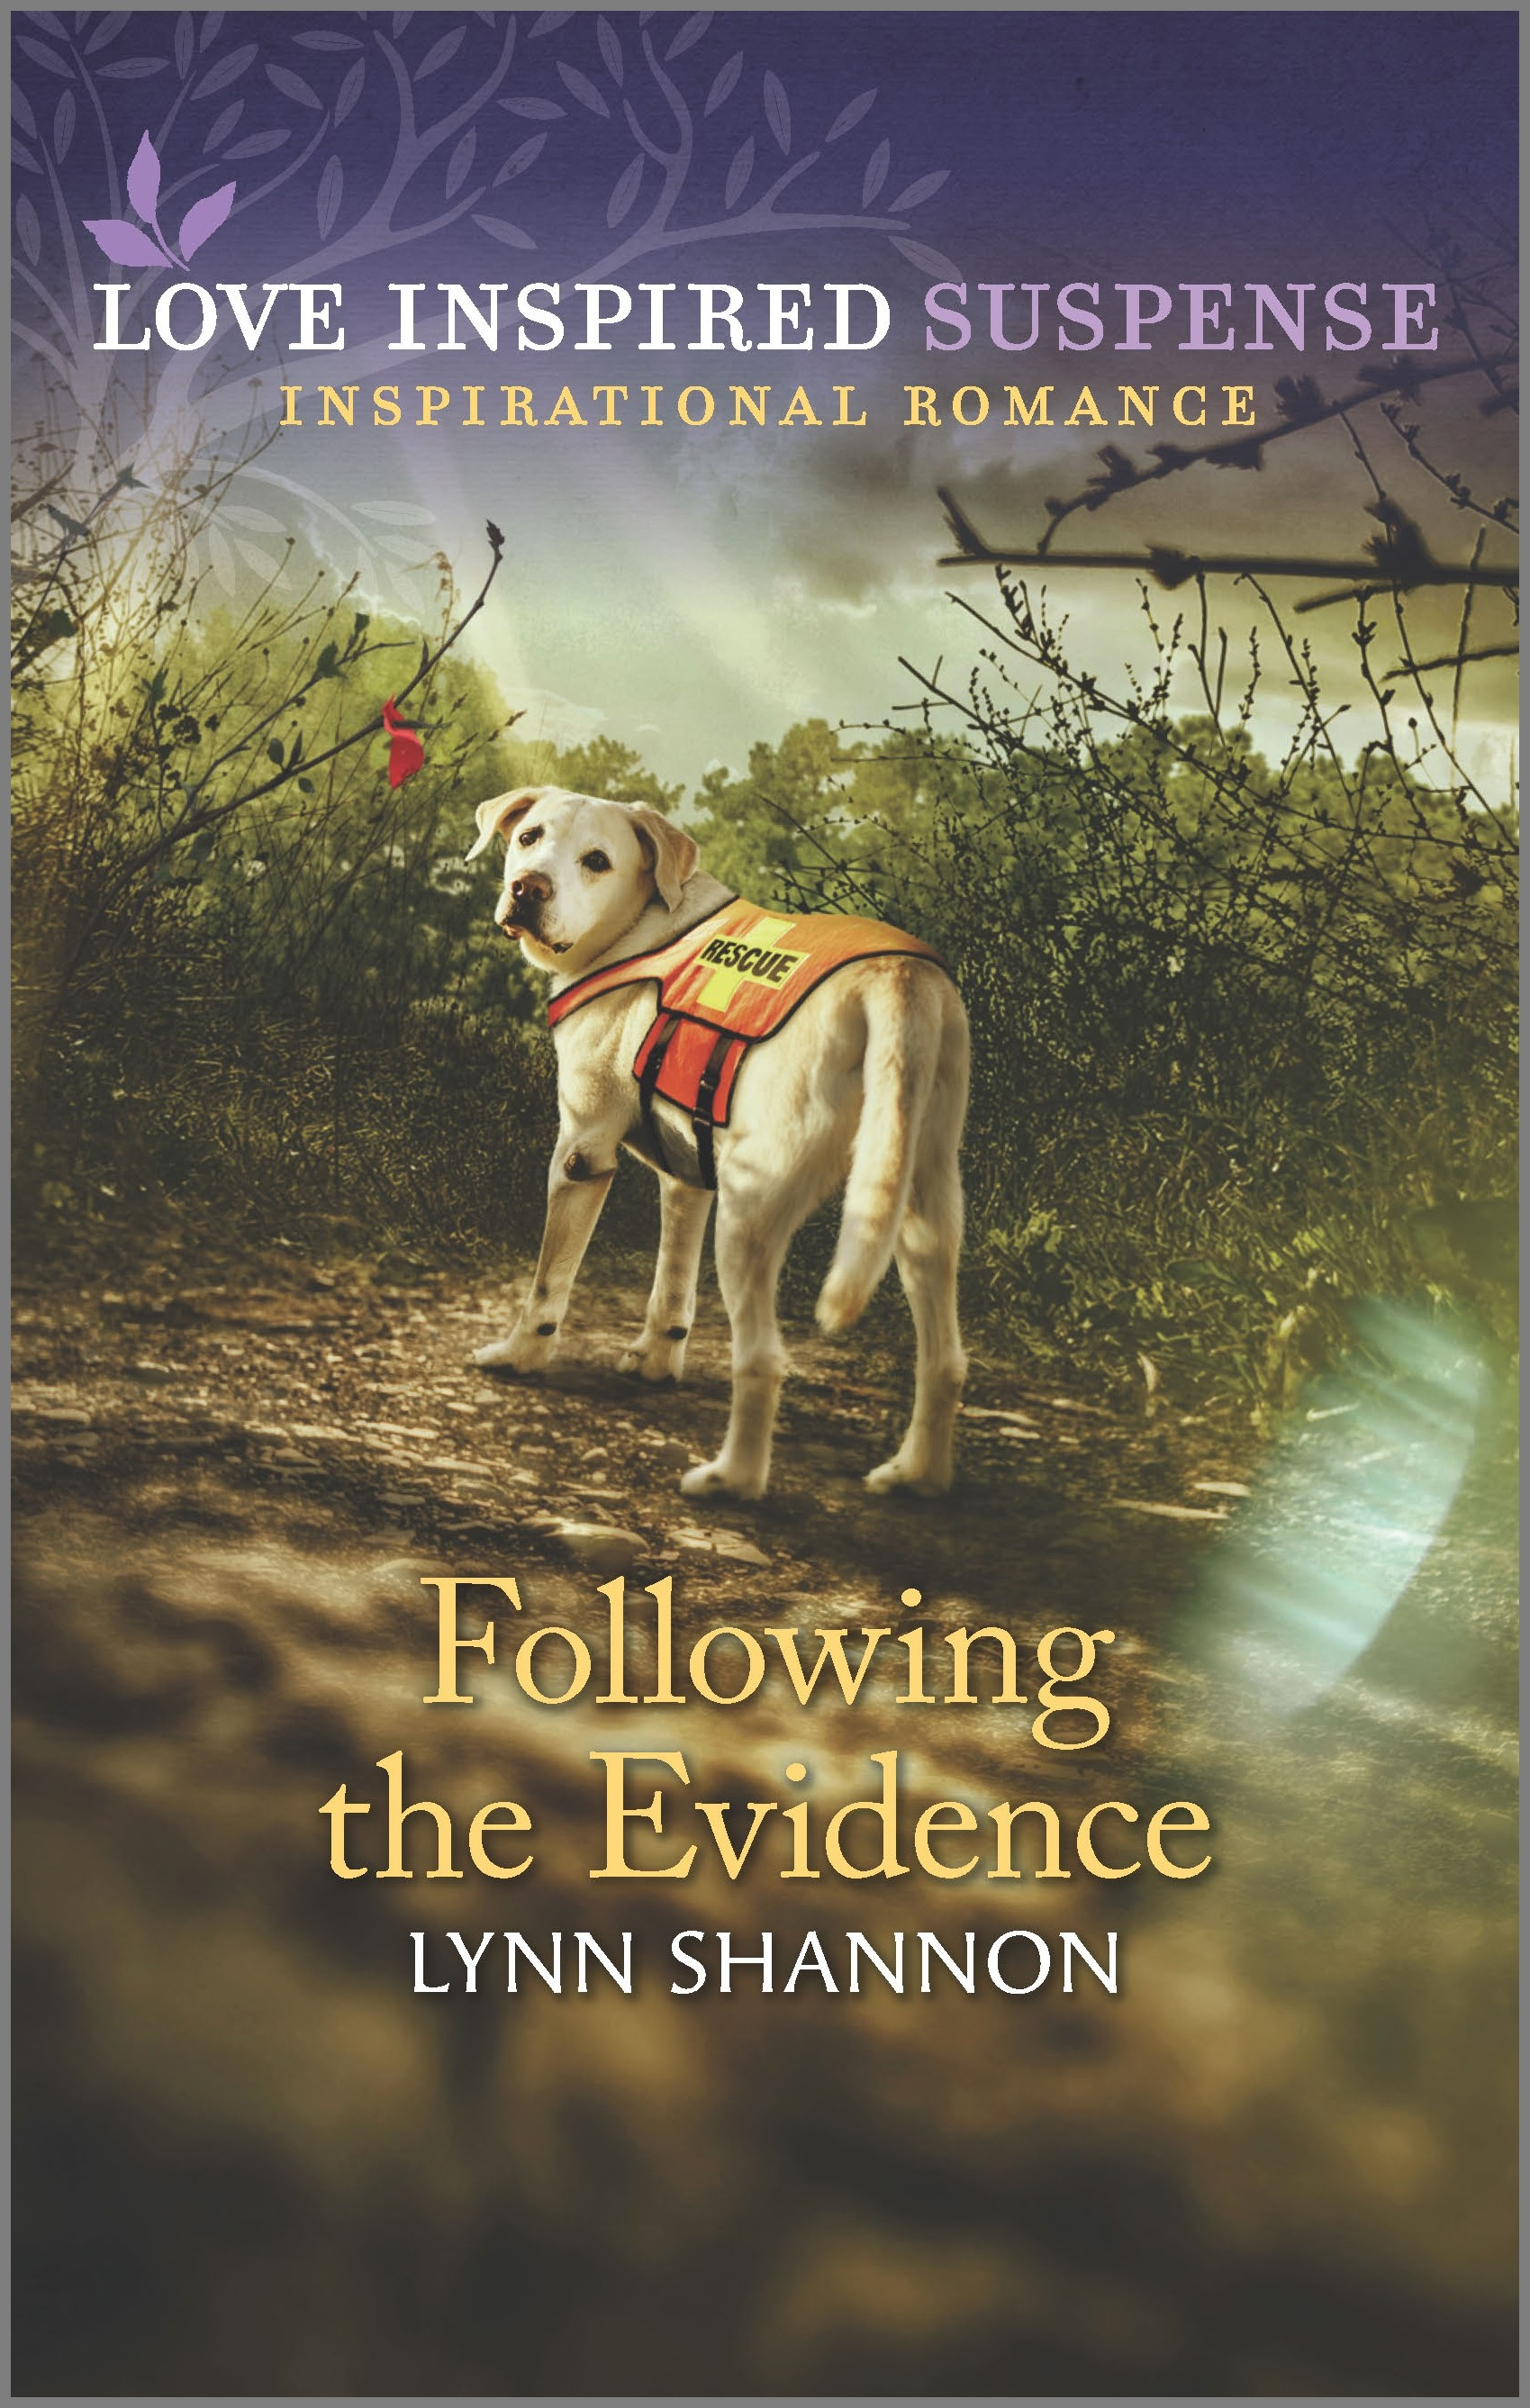 Following the Evidence [electronic resource]